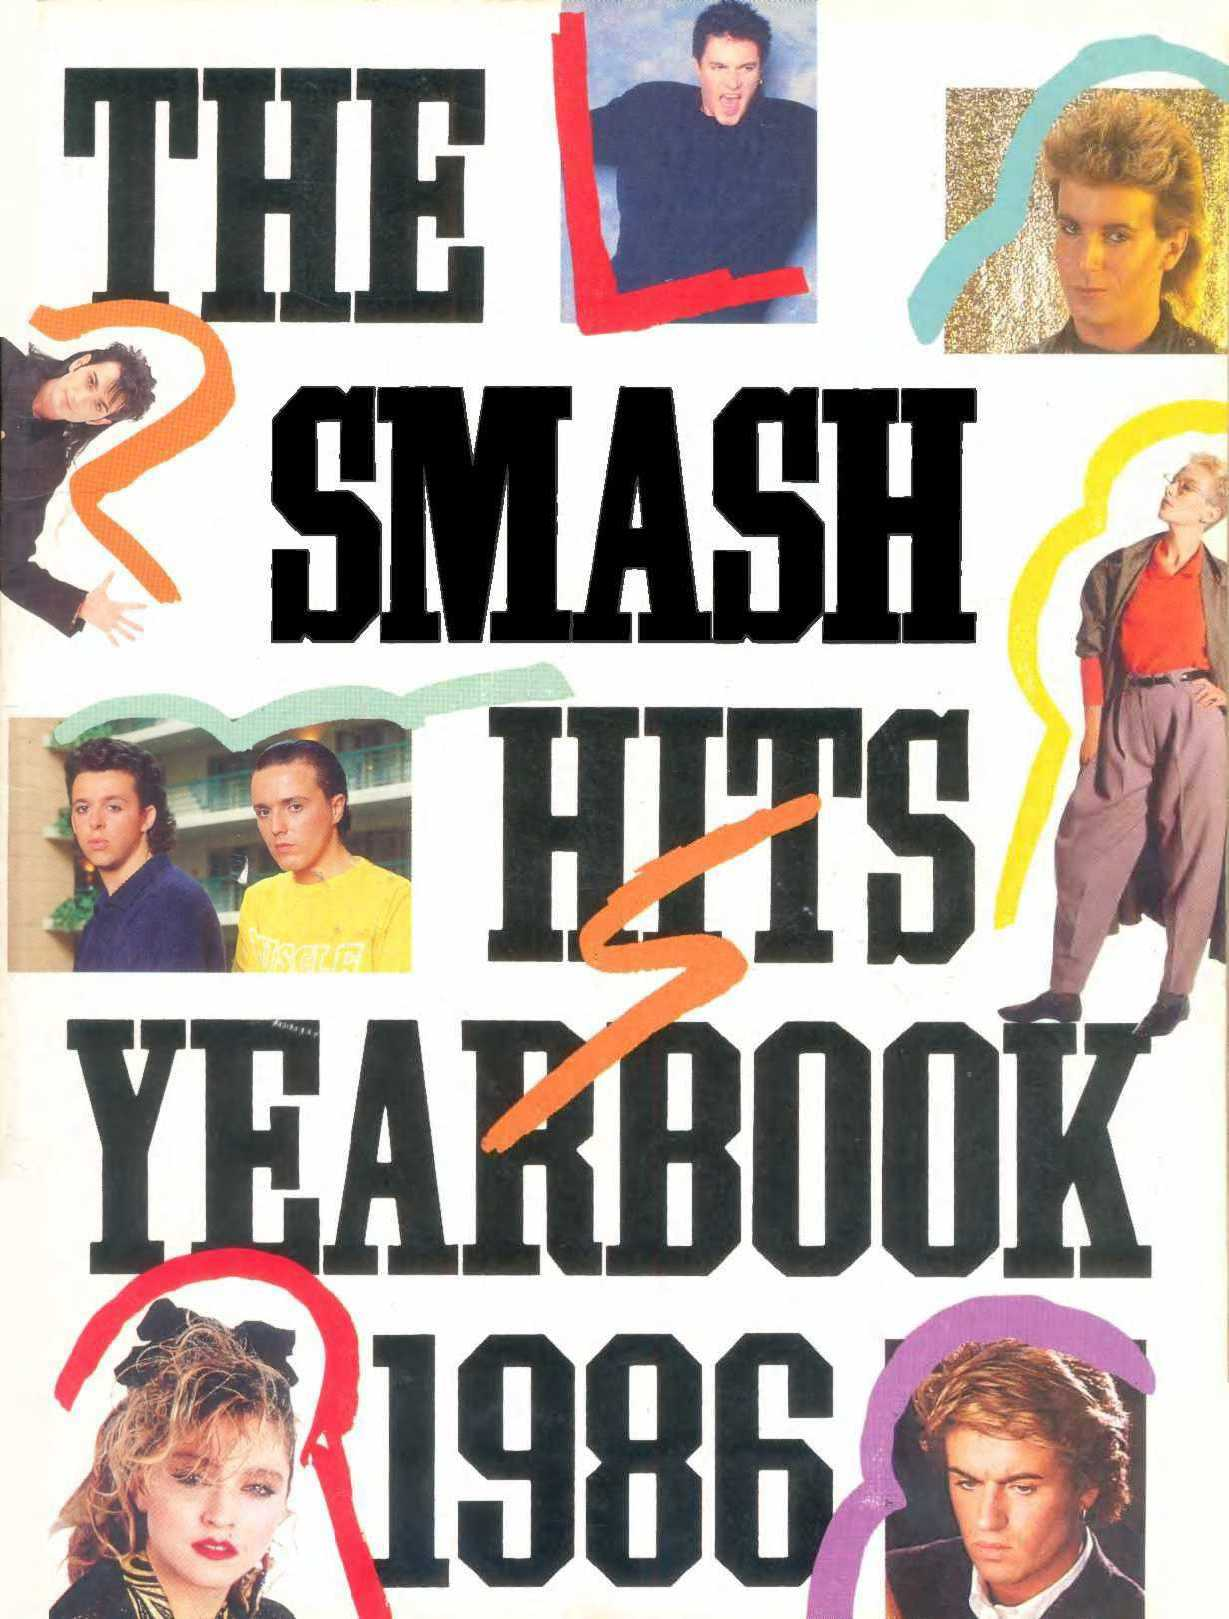 A Year in the Life of Wham! as Told by George Michael (Smash Hits Yearbook, 1986)